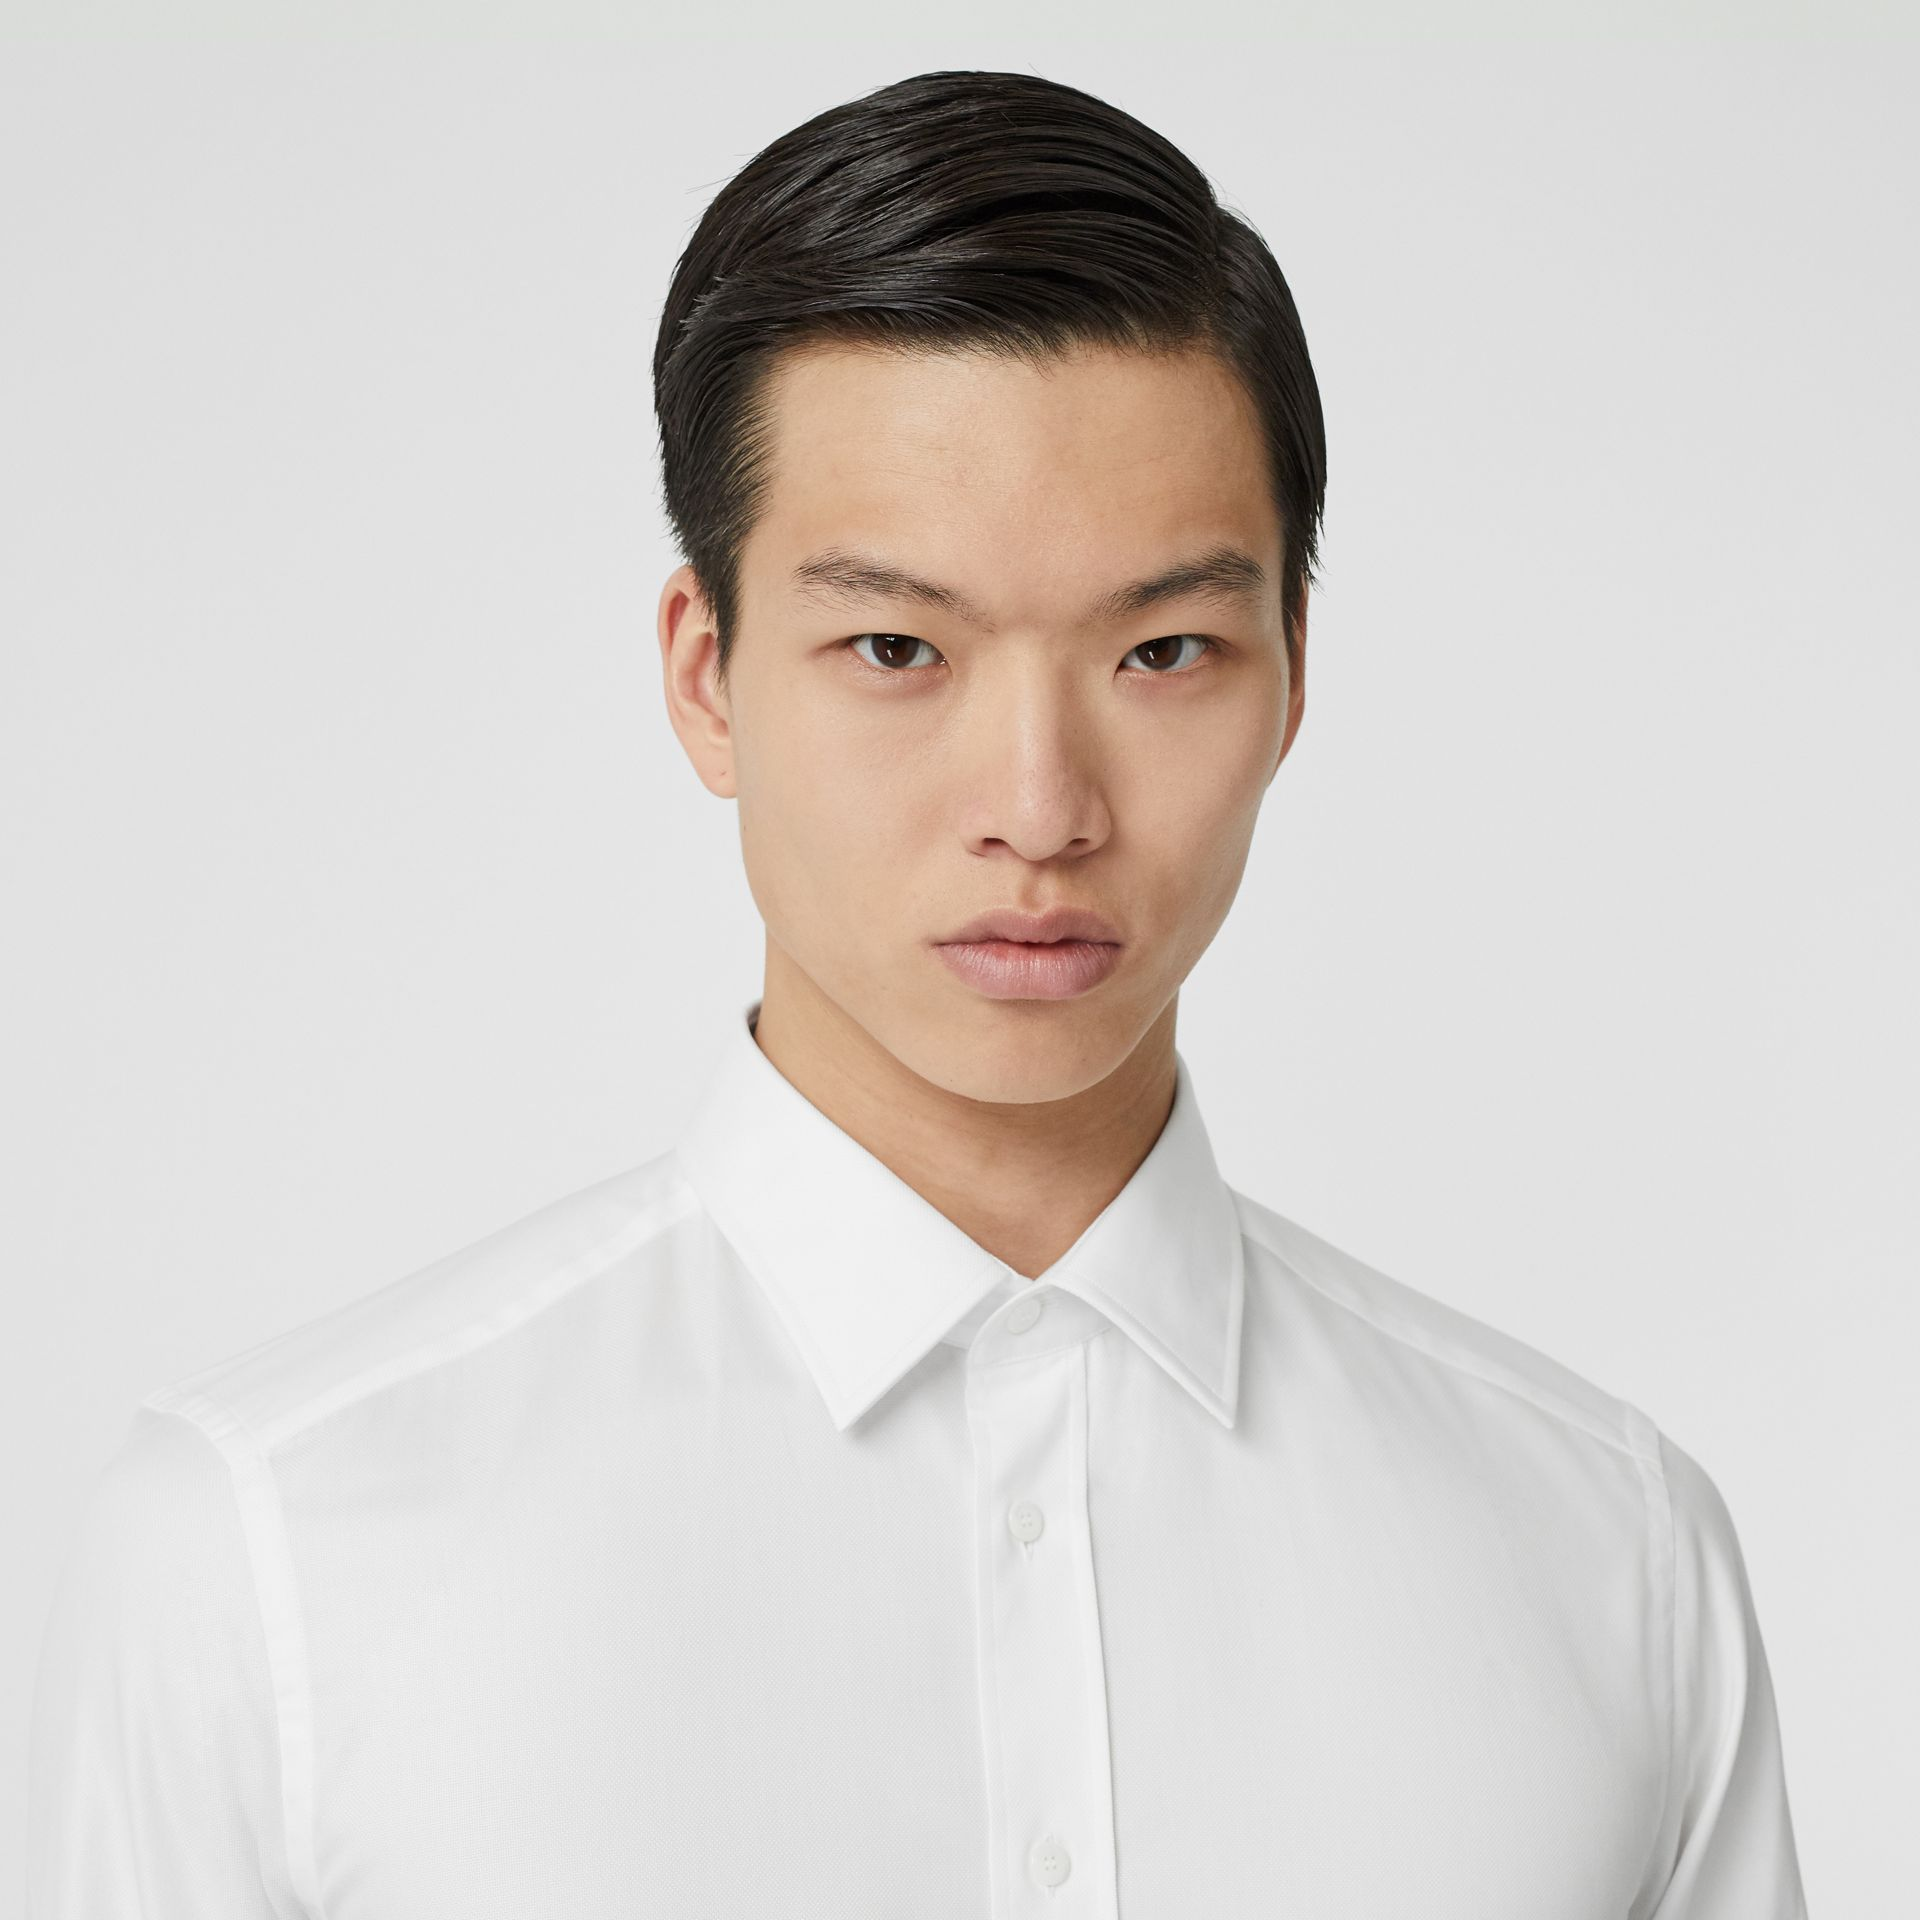 Classic Fit Monogram Motif Cotton Oxford Shirt in White - Men | Burberry - gallery image 1